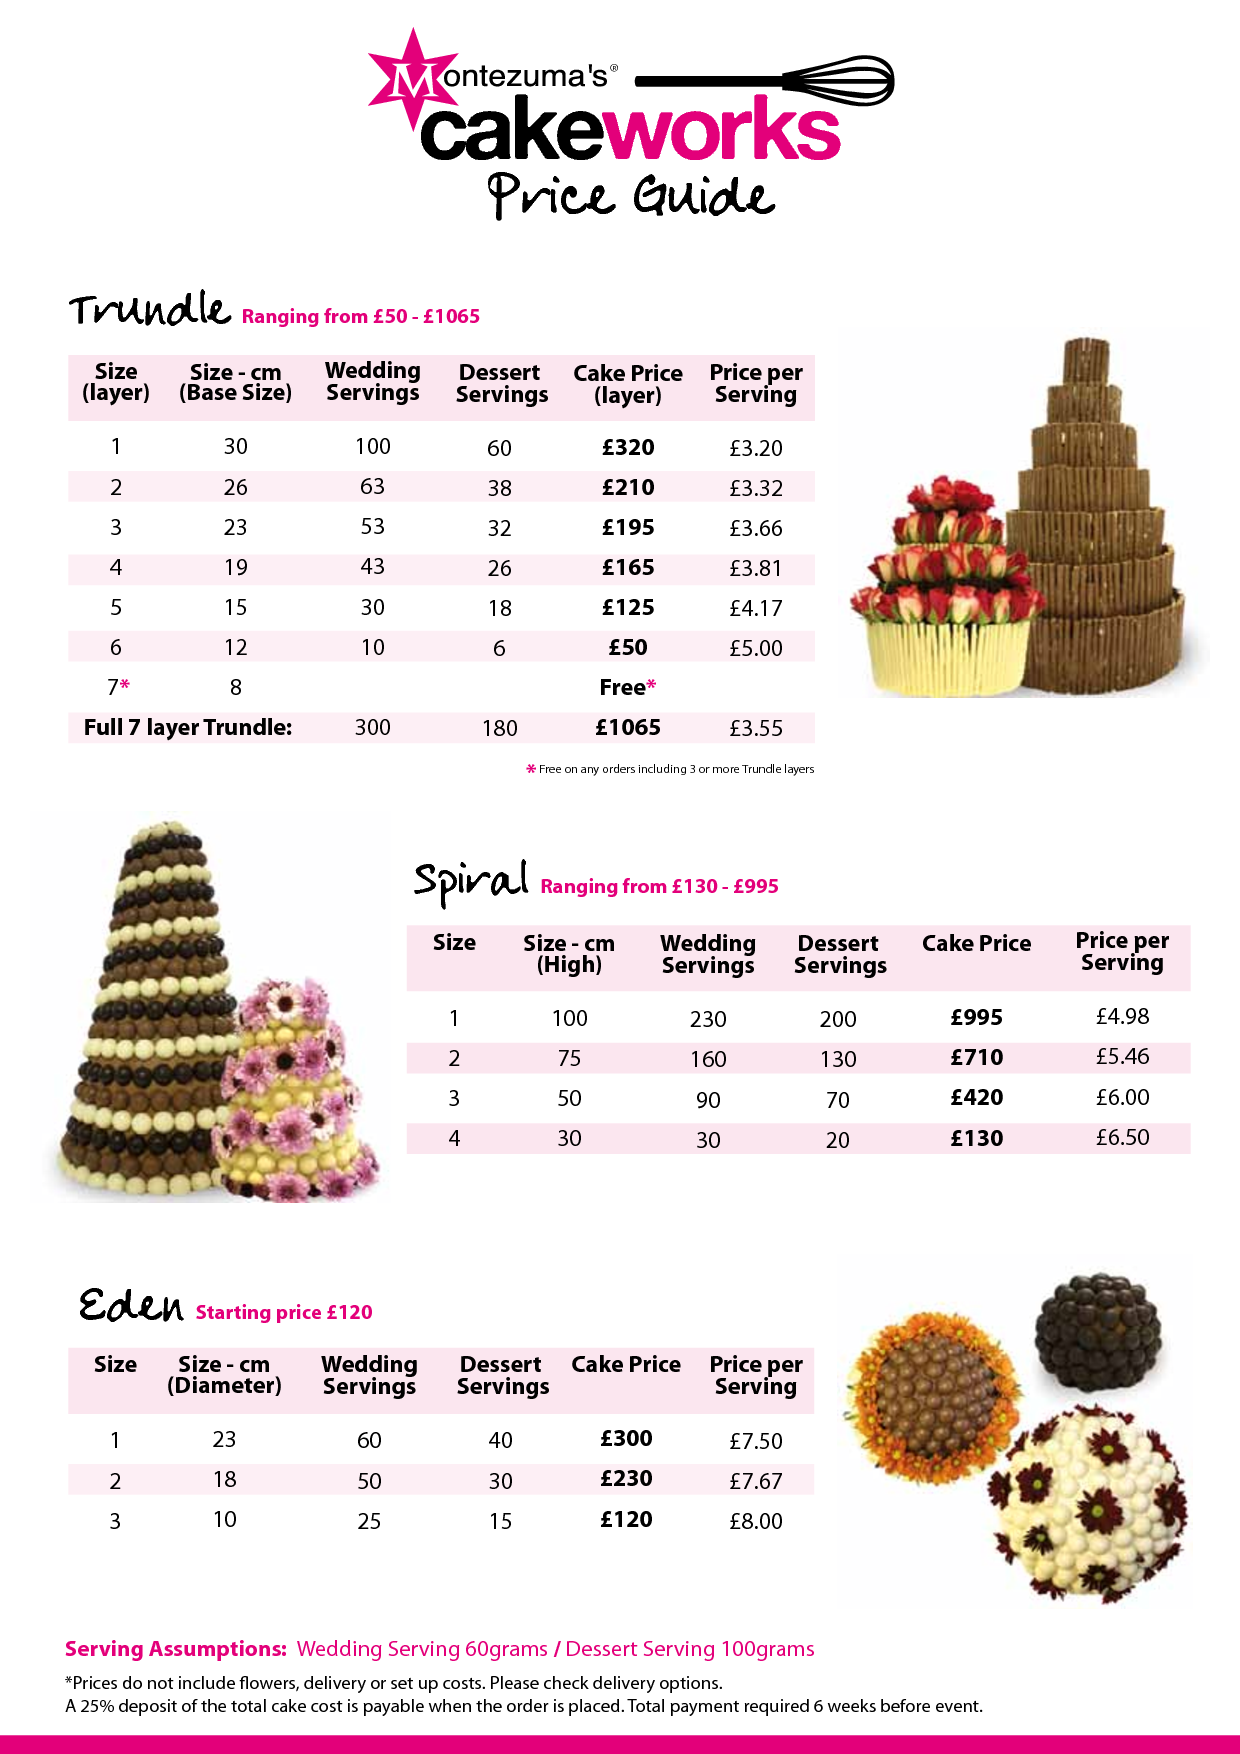 Image detail for wedding cake price table cakes Pinterest